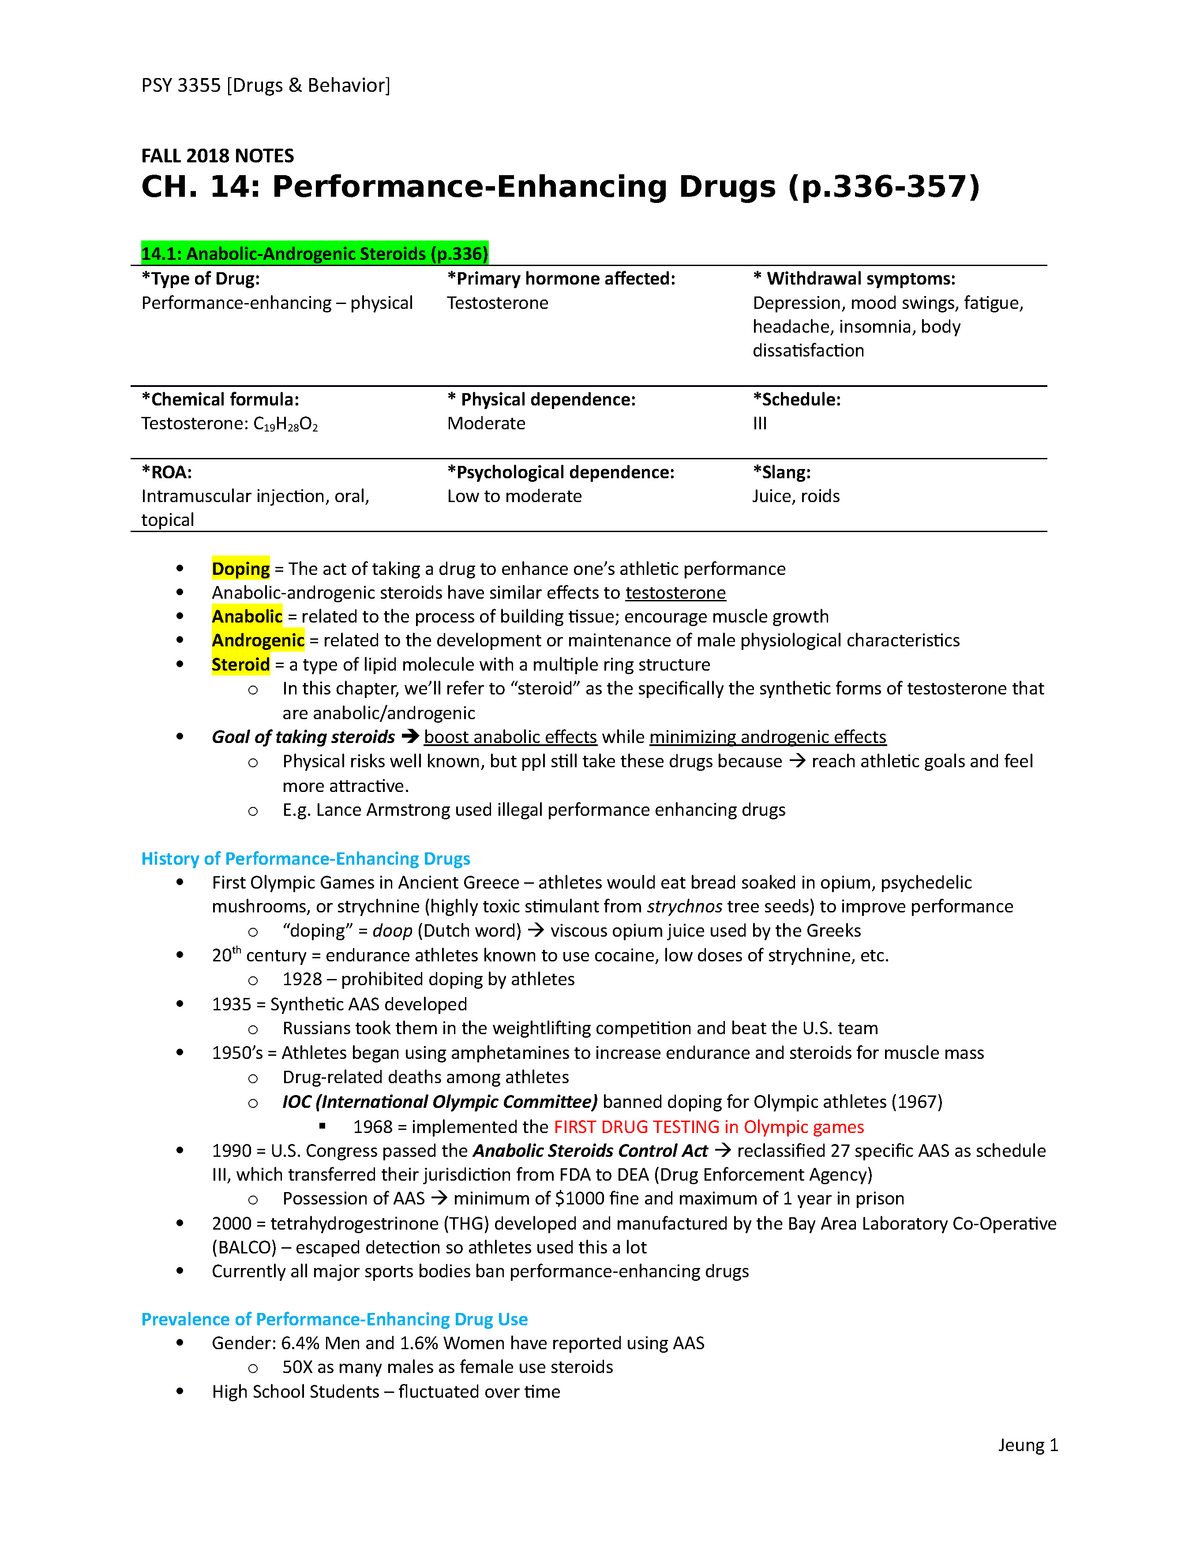 Ch  14 Performance-Enhancing Drugs - PSY 3355: Drugs And